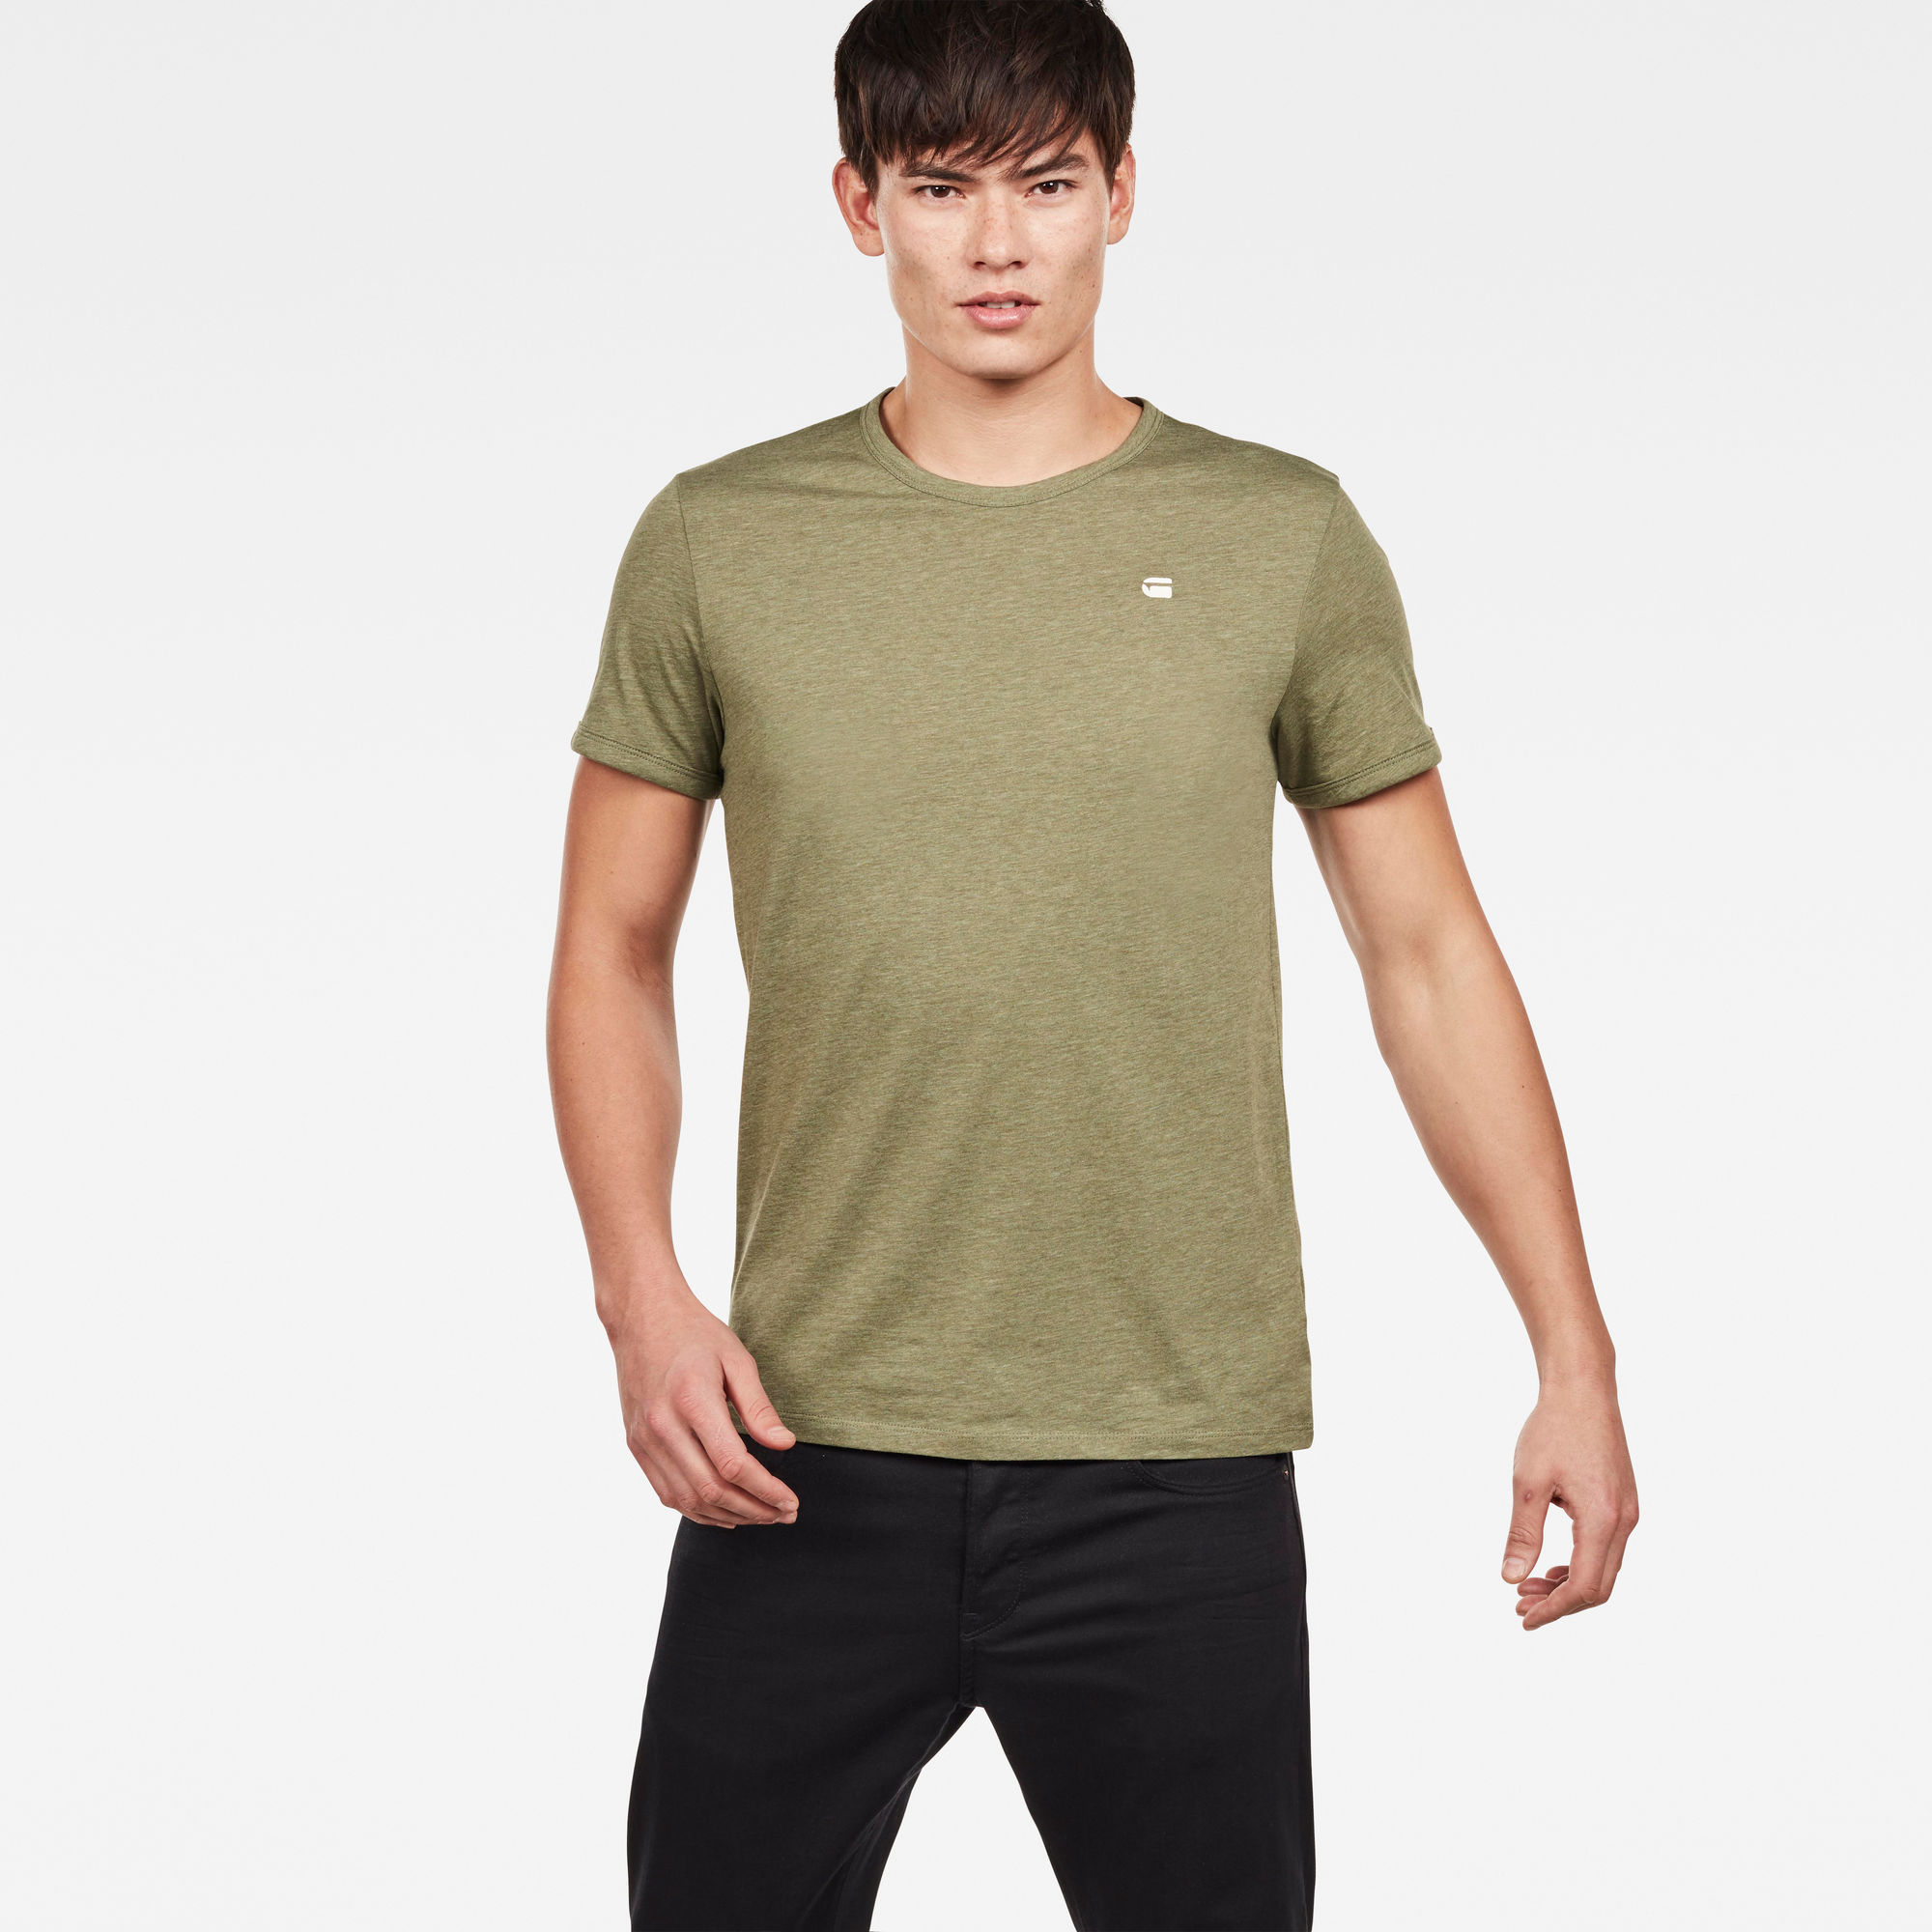 Image of G Star Raw Base-S T-Shirt